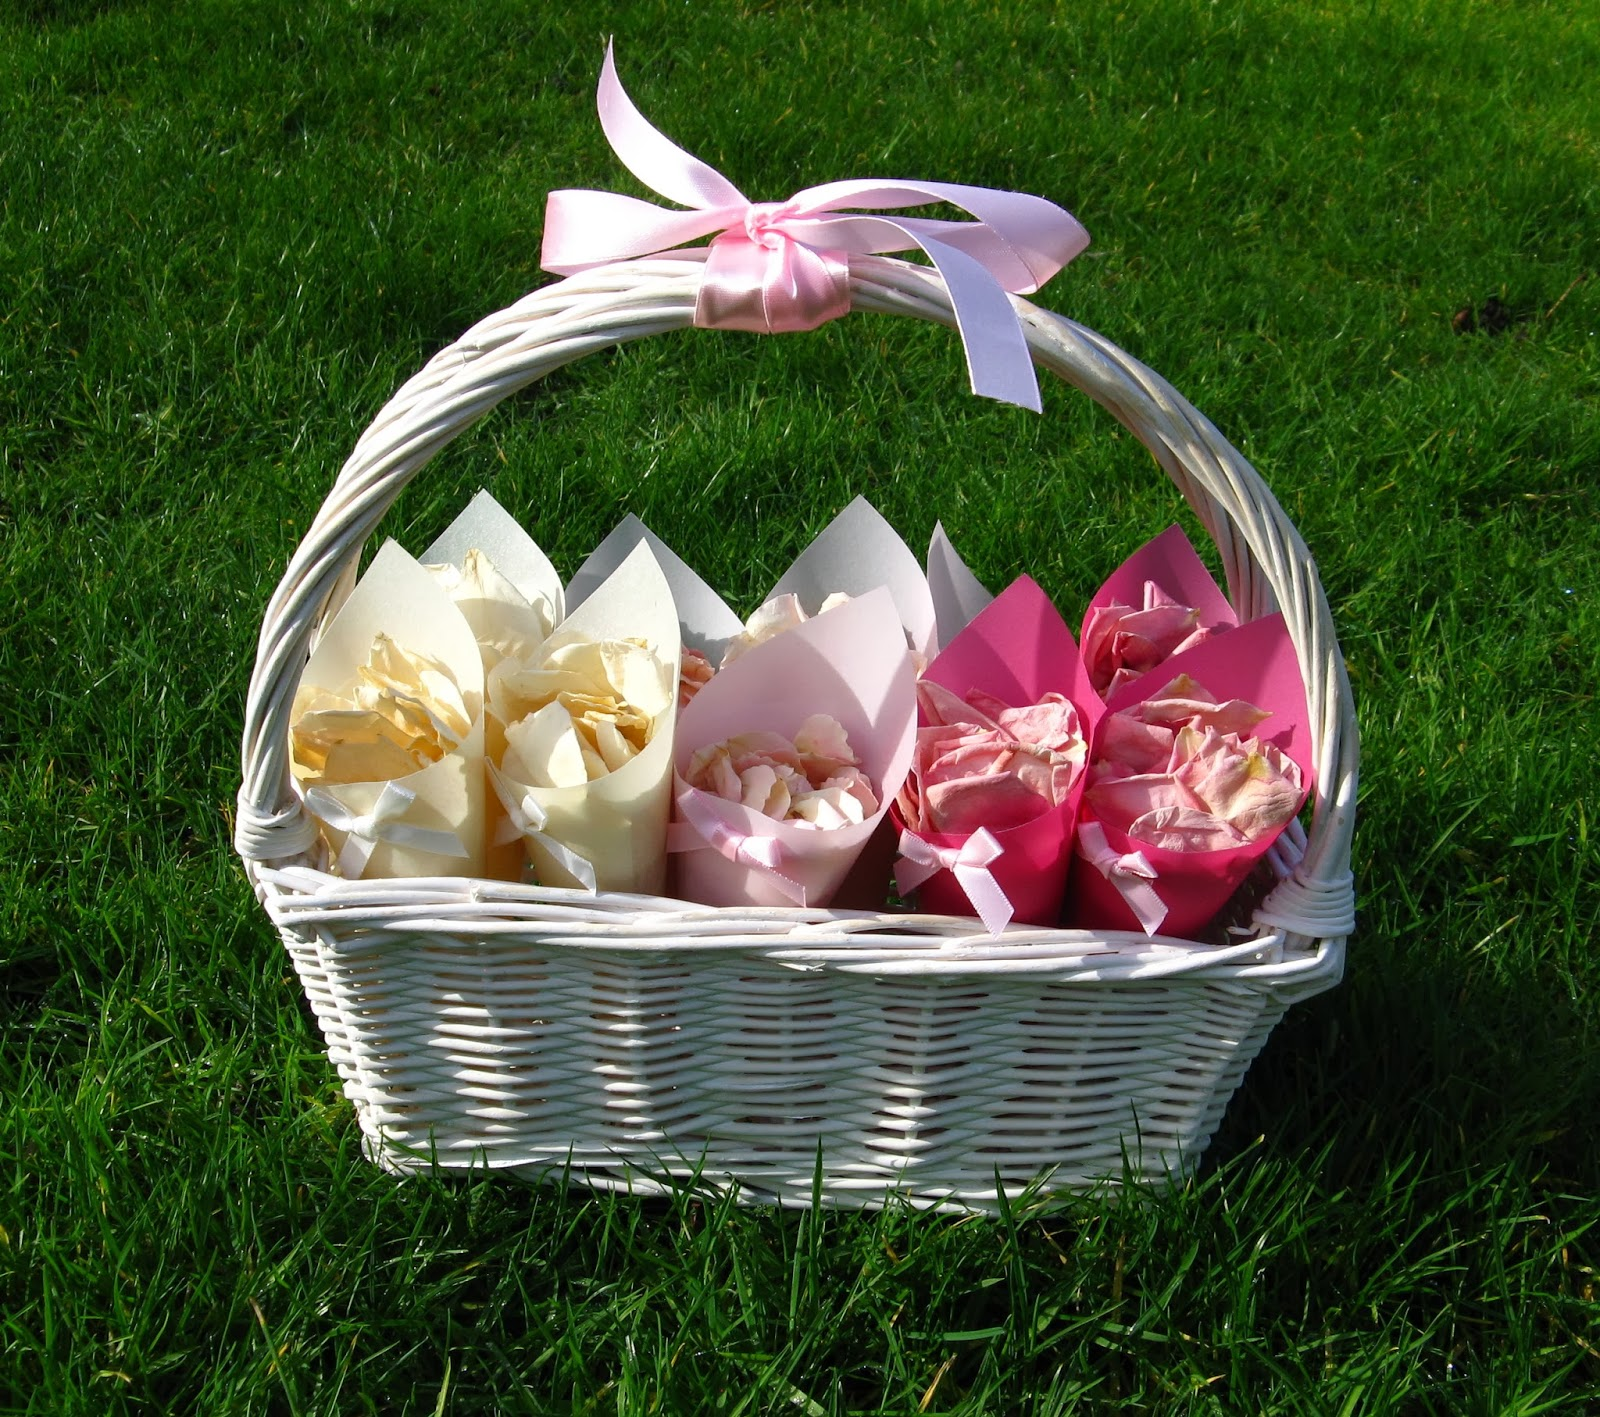 Wedding Baskets For Flower Petals : The confetti ombre inspiration wedding petals and